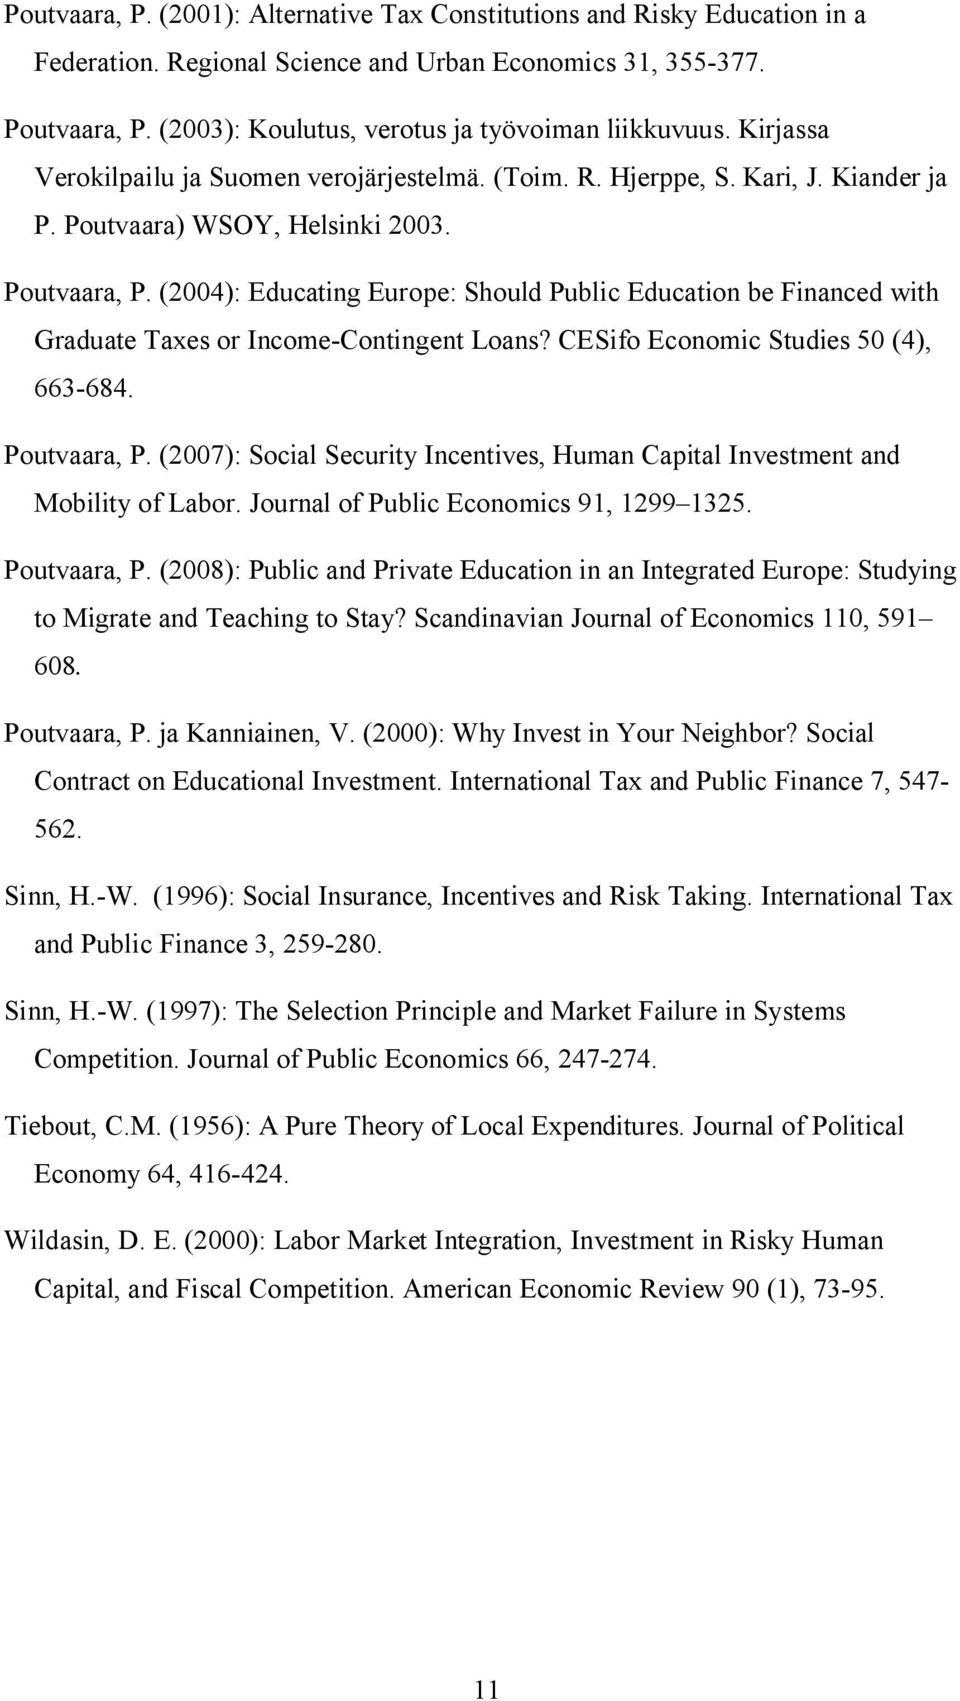 (2004): Educating Europe: Should Public Education be Financed with Graduate Taxes or Income-Contingent Loans? CESifo Economic Studies 50 (4), 663-684. Poutvaara, P.